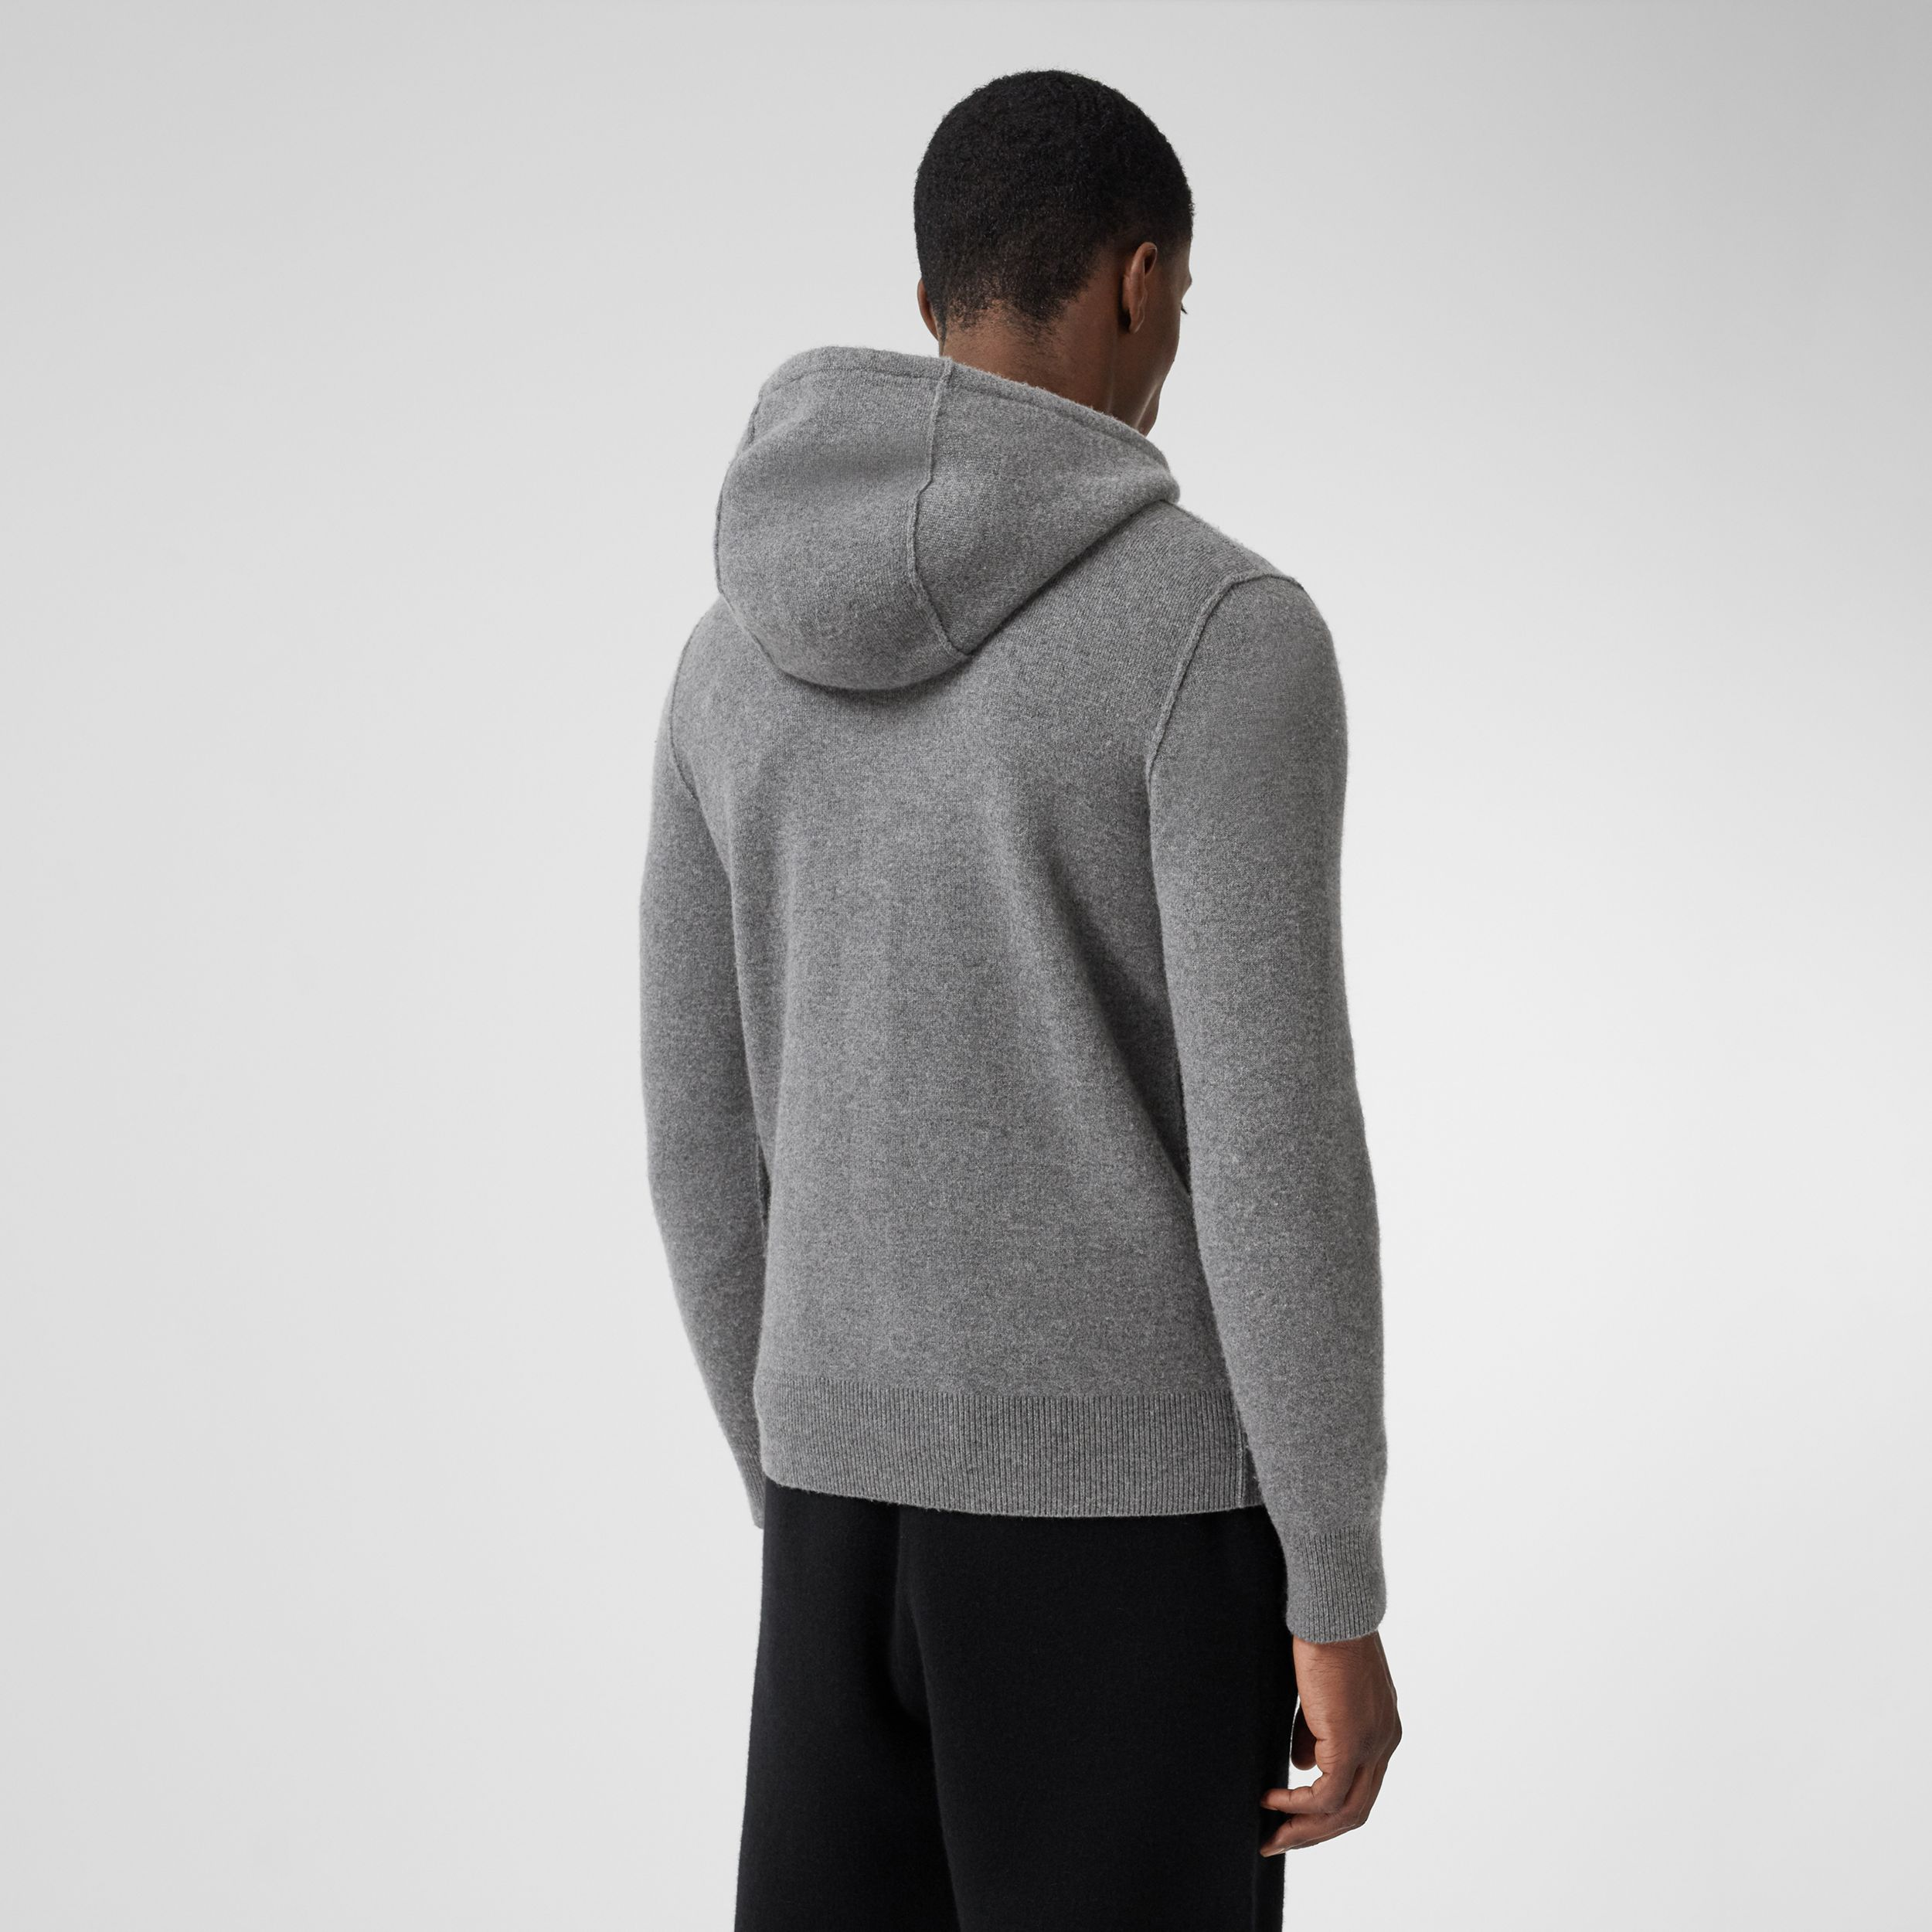 Monogram Motif Cashmere Blend Hooded Top in Mid Grey Melange - Men | Burberry Hong Kong S.A.R. - 3